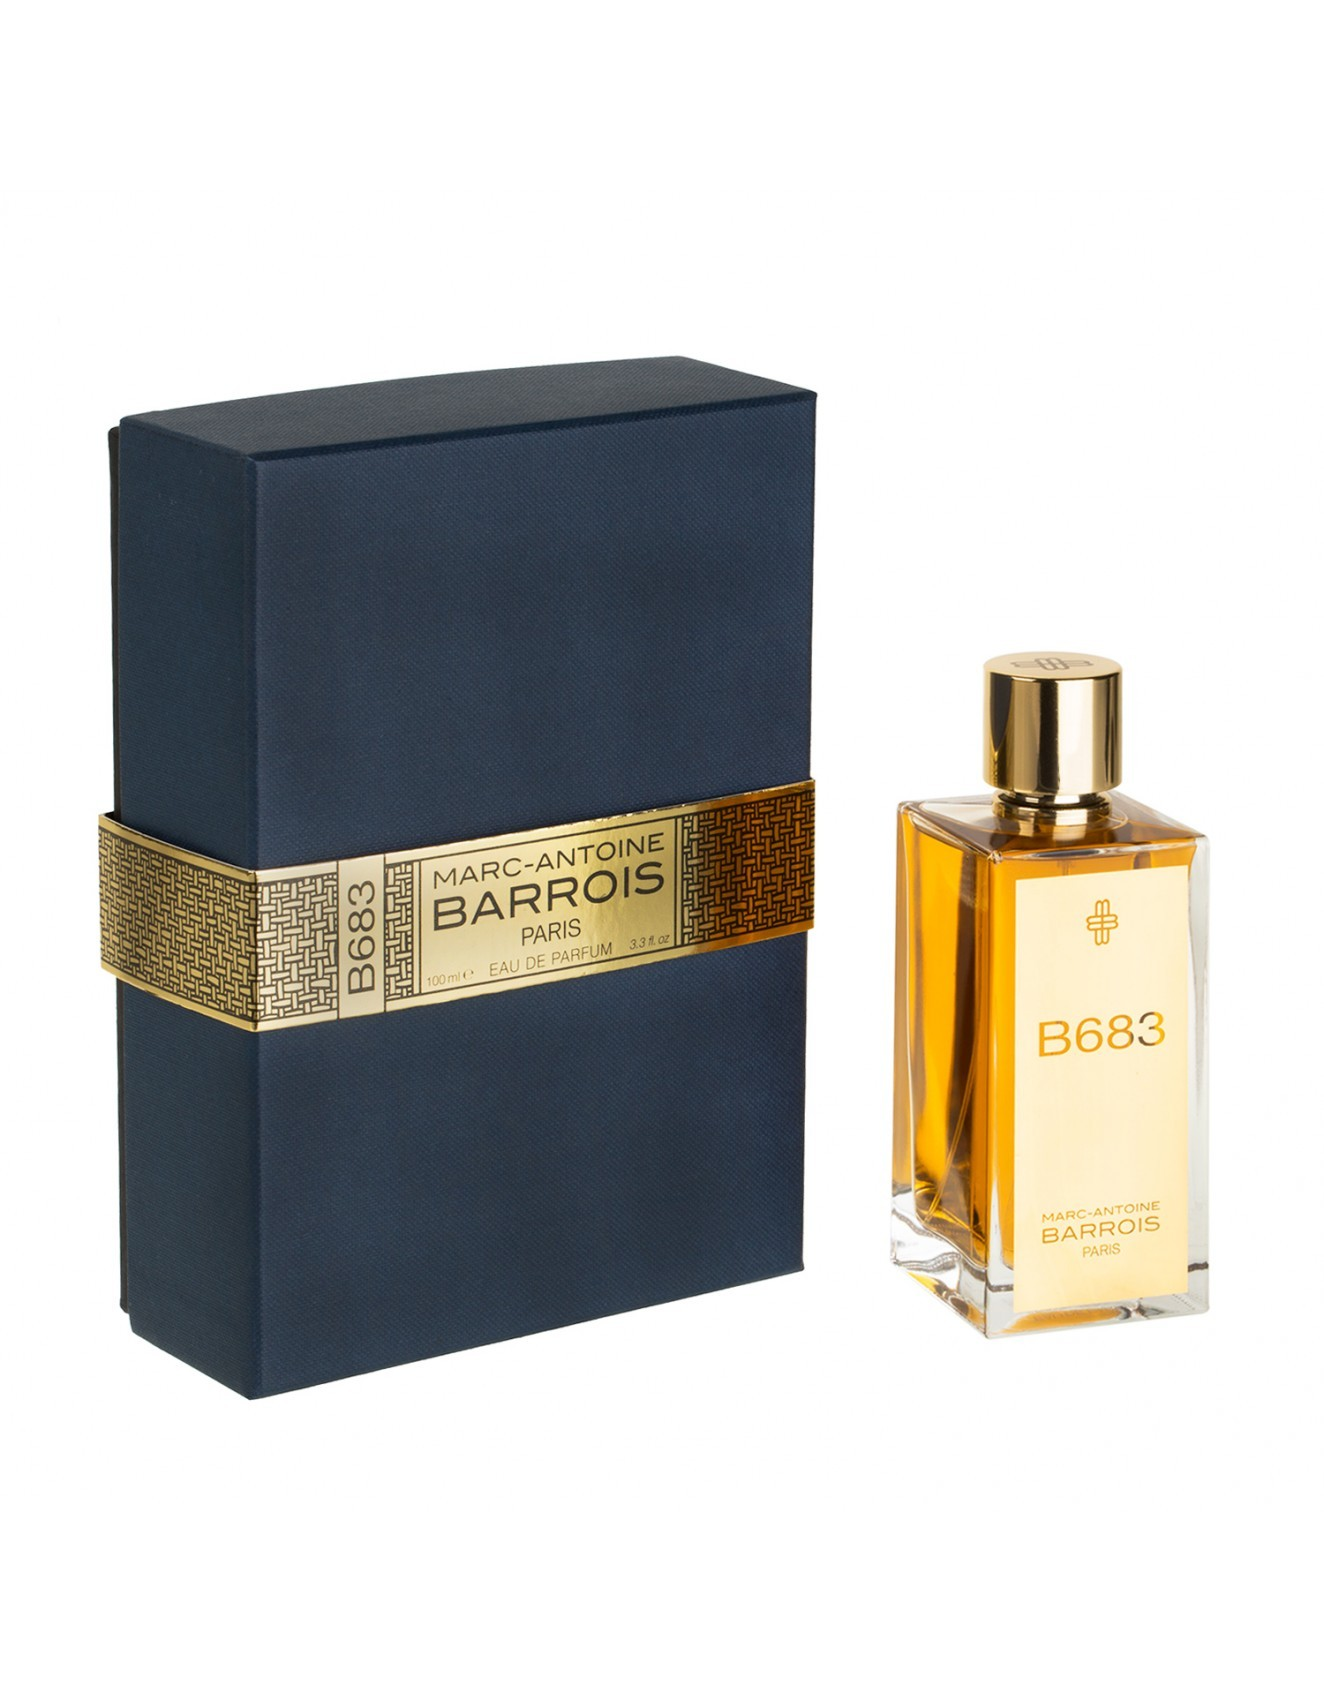 MARC-ANTOINE BARROIS B683 EDP 100 ML